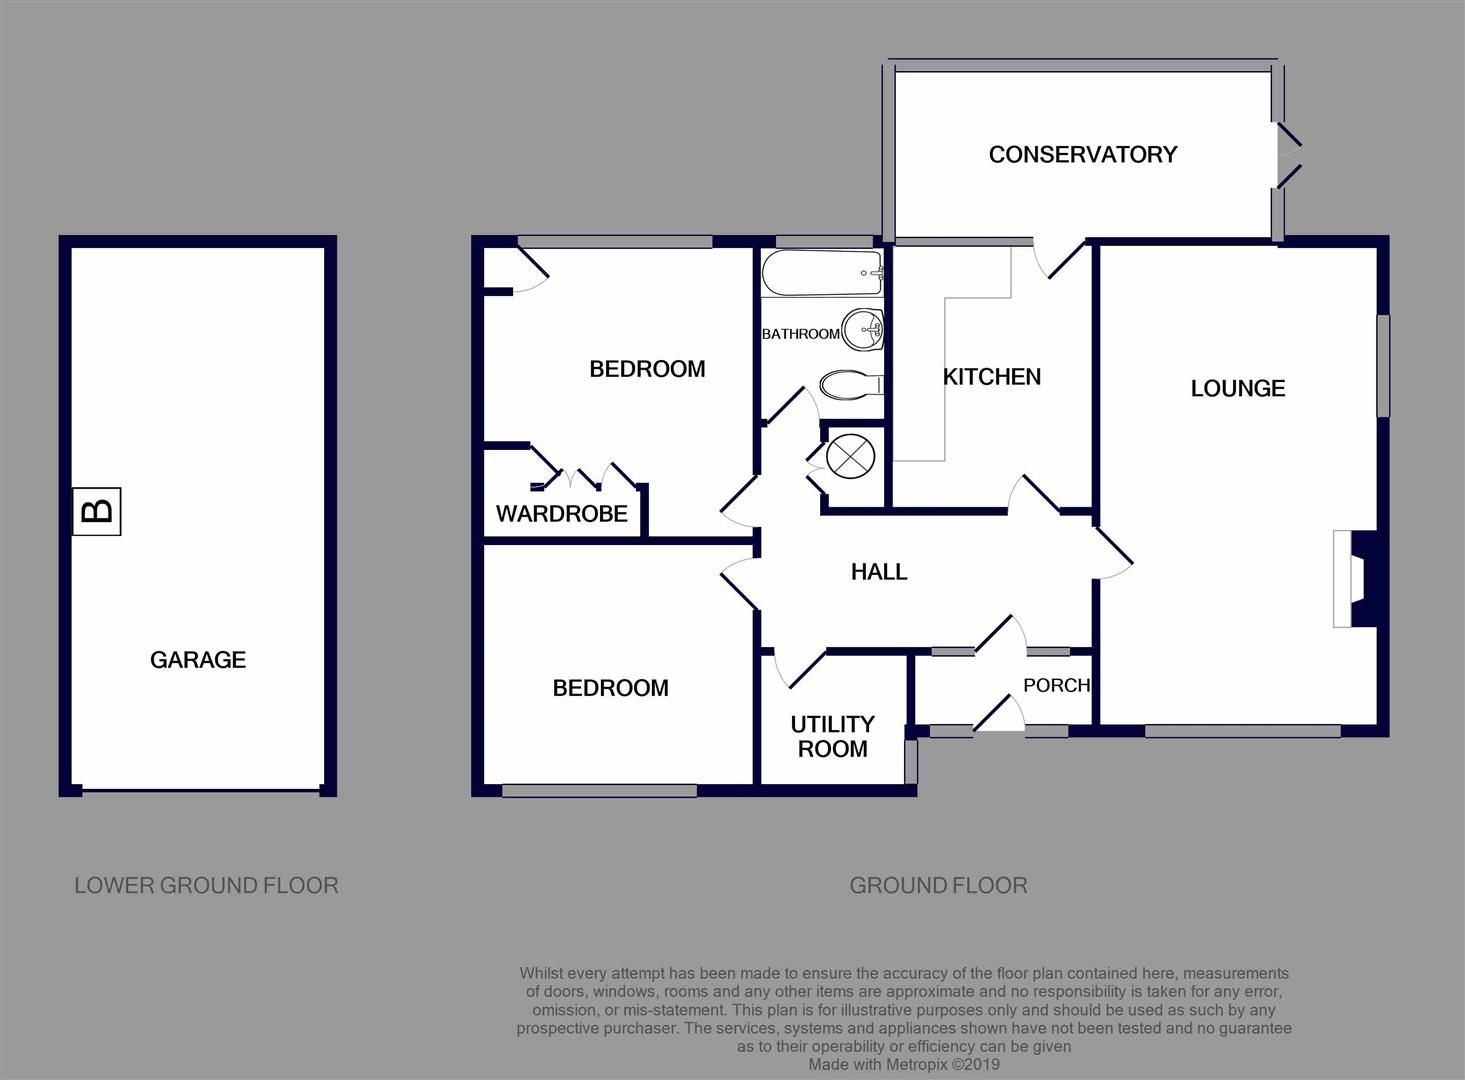 2 bed detached-bungalow for sale - Property Floorplan